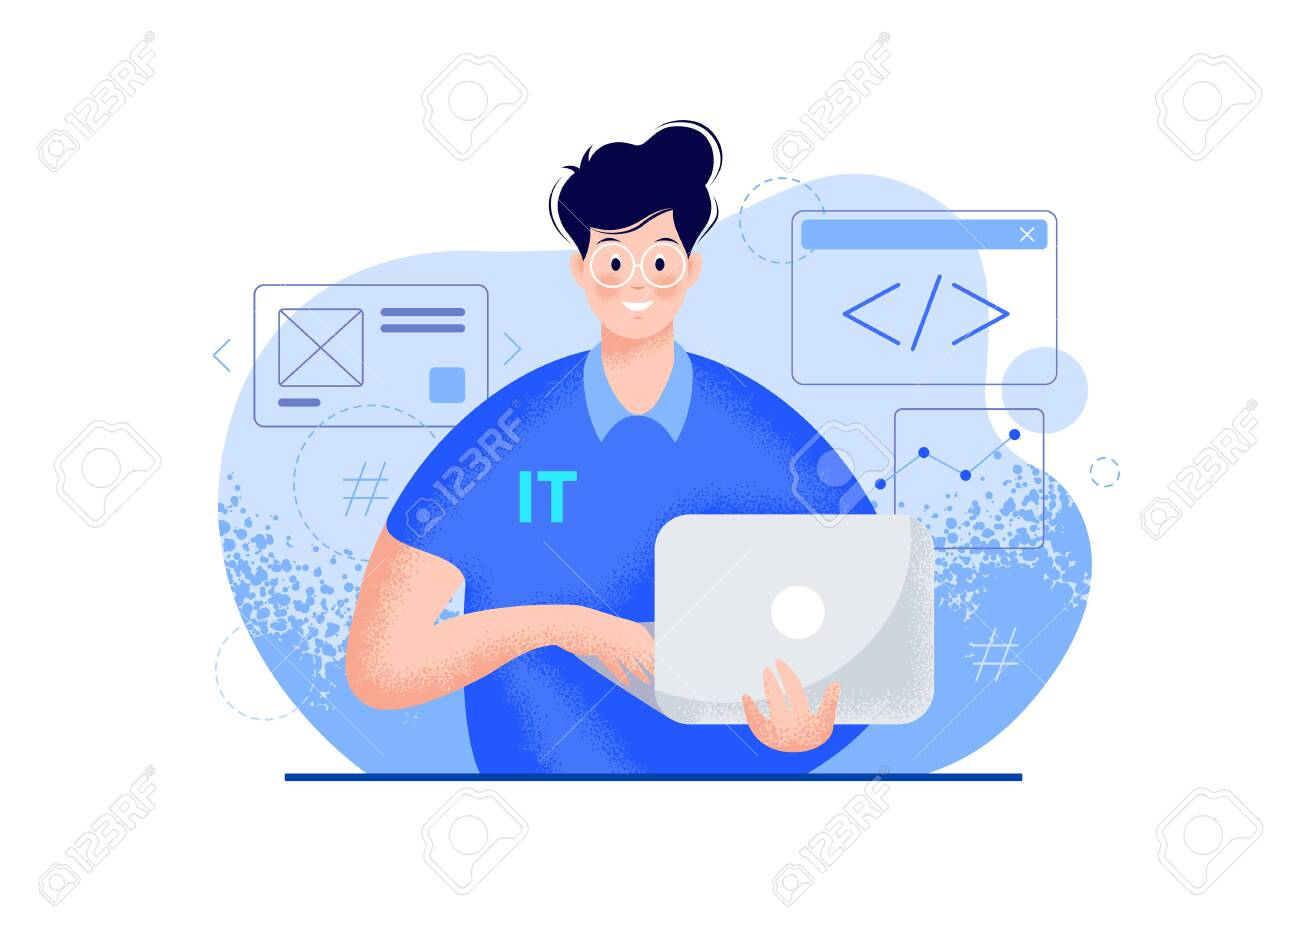 IT guy with a laptop vector modern illustration - blue color. Smiling young man portrait in glasses, a polo t-shirt, holding a computer in hands, coding icons. Tech person character flat illustration - 154657884